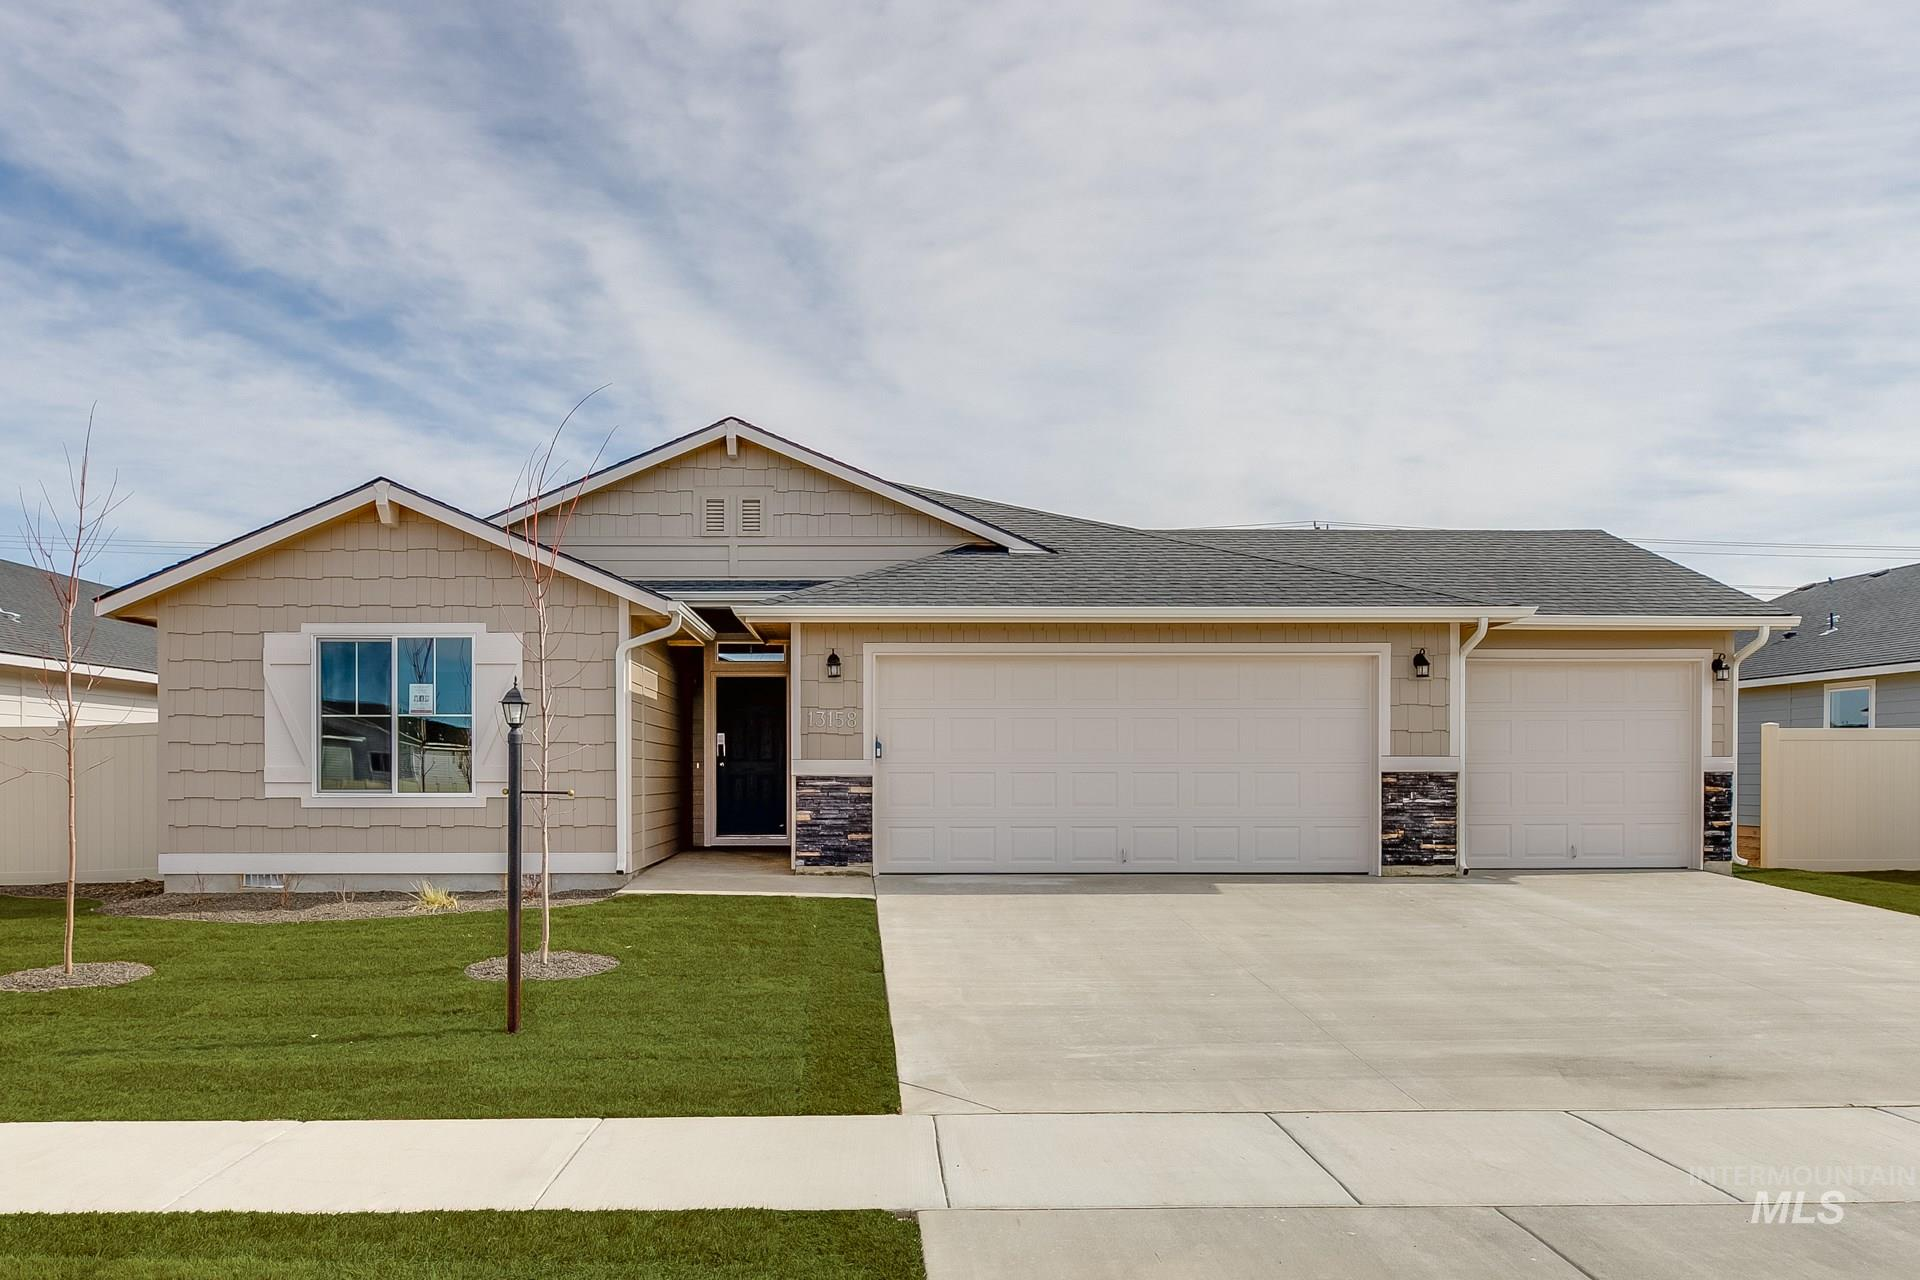 12769 Sondra St. Property Photo - Caldwell, ID real estate listing